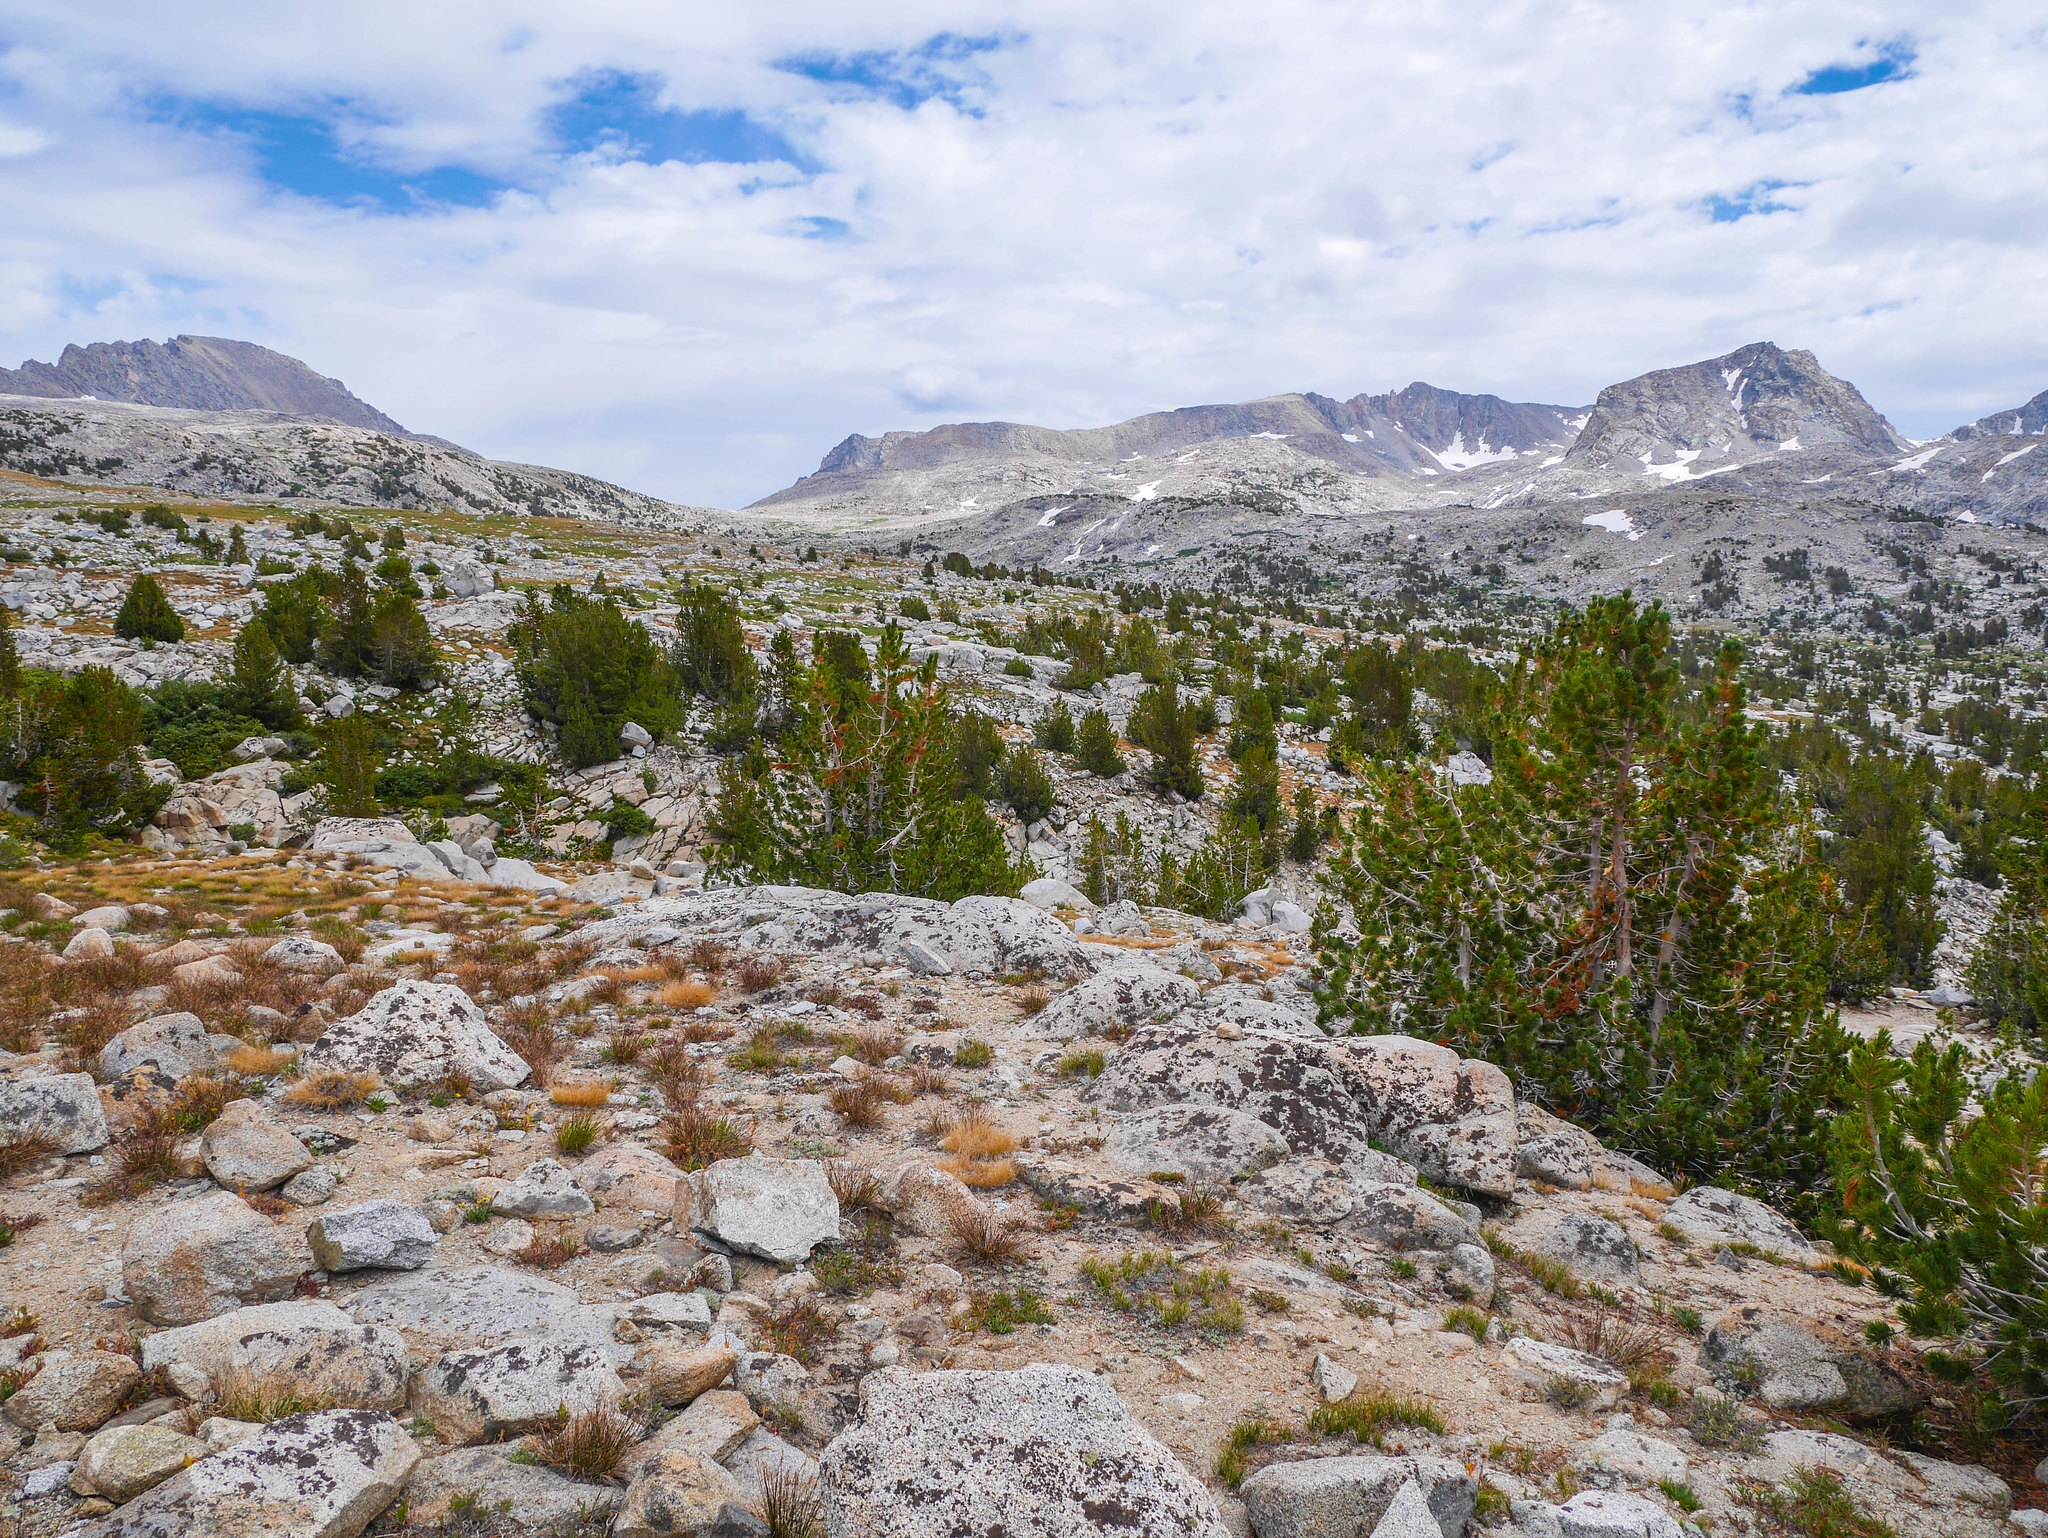 Looking up towards Piute Pass and Muriel Peak